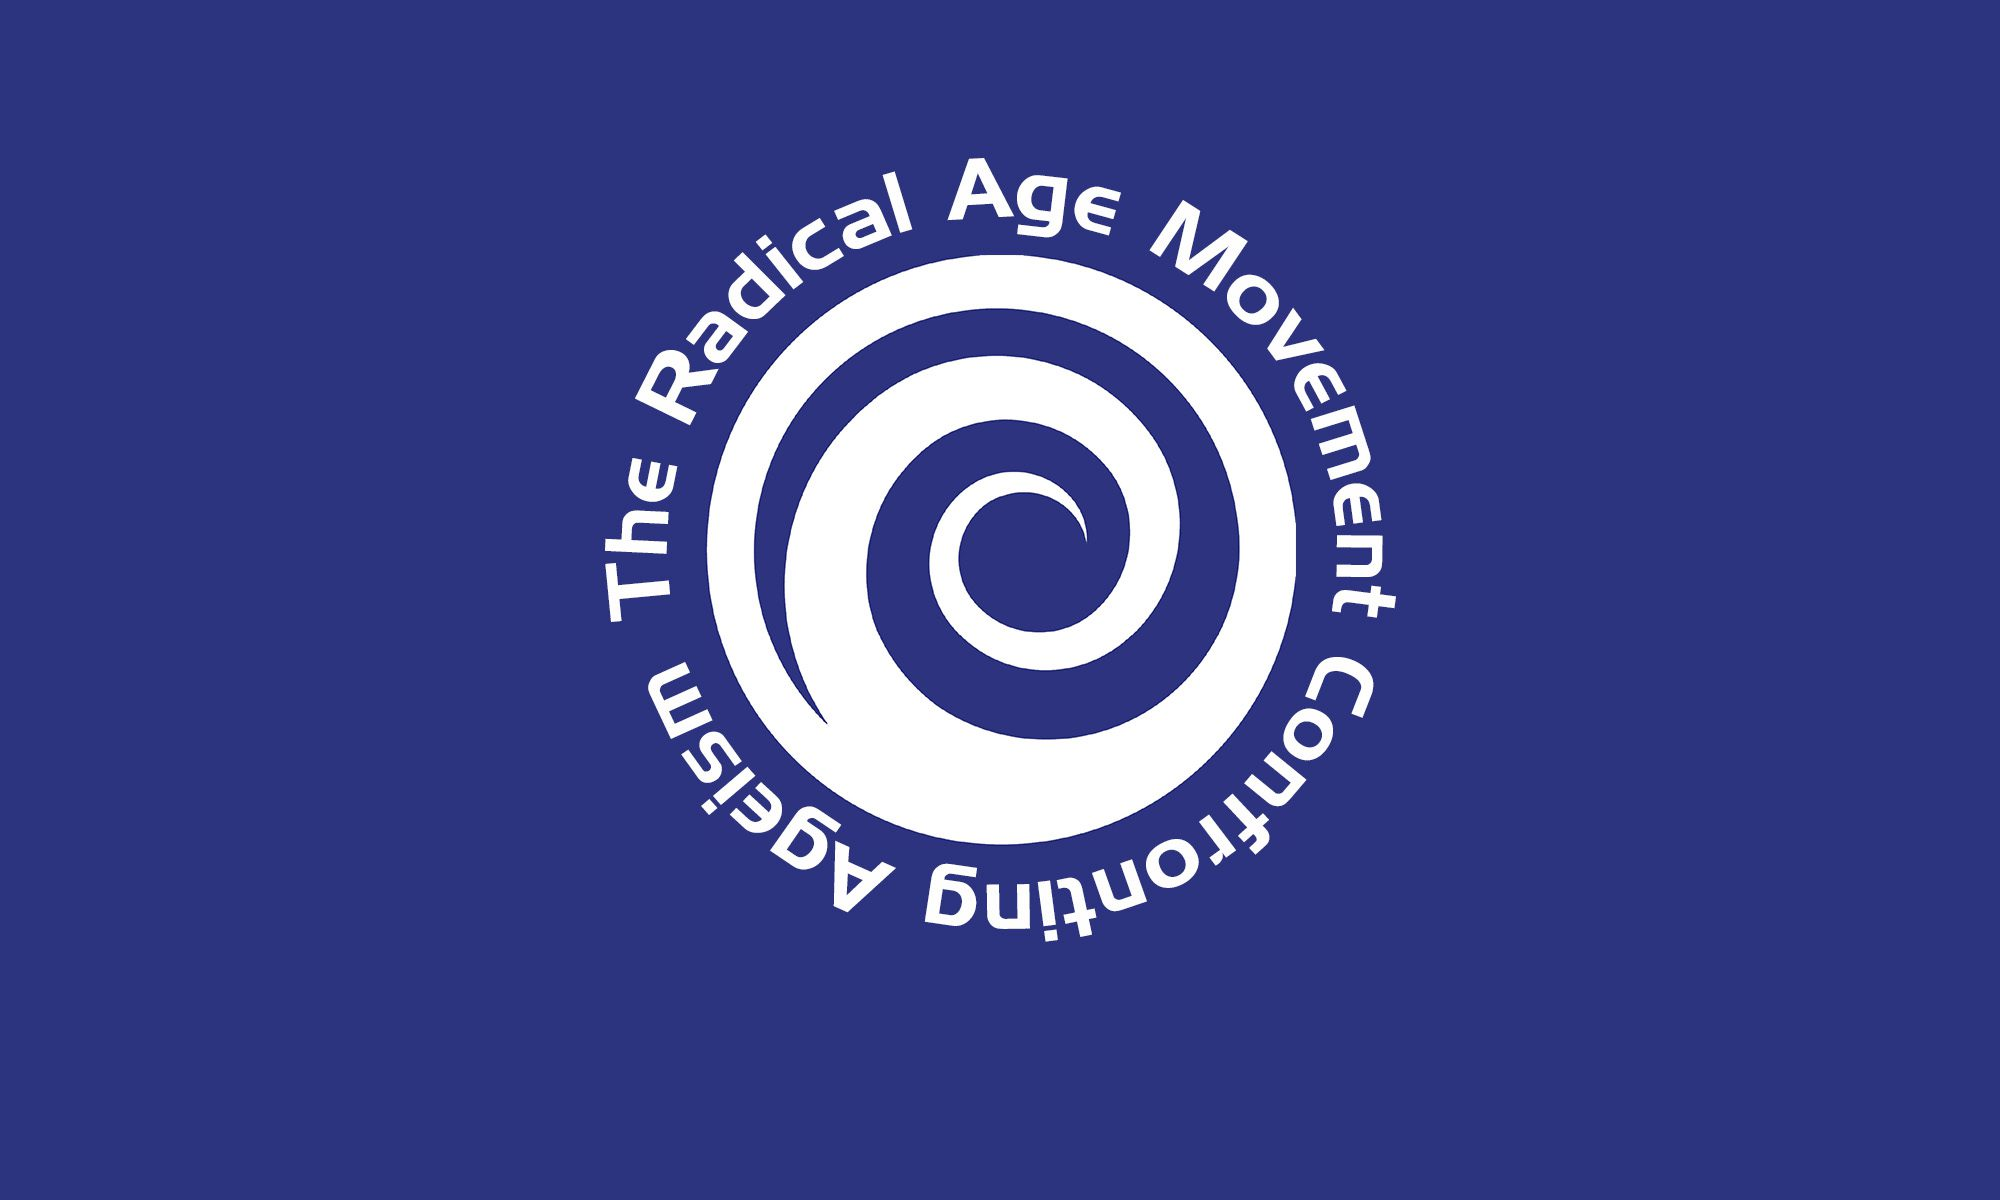 The Radical Age Movement